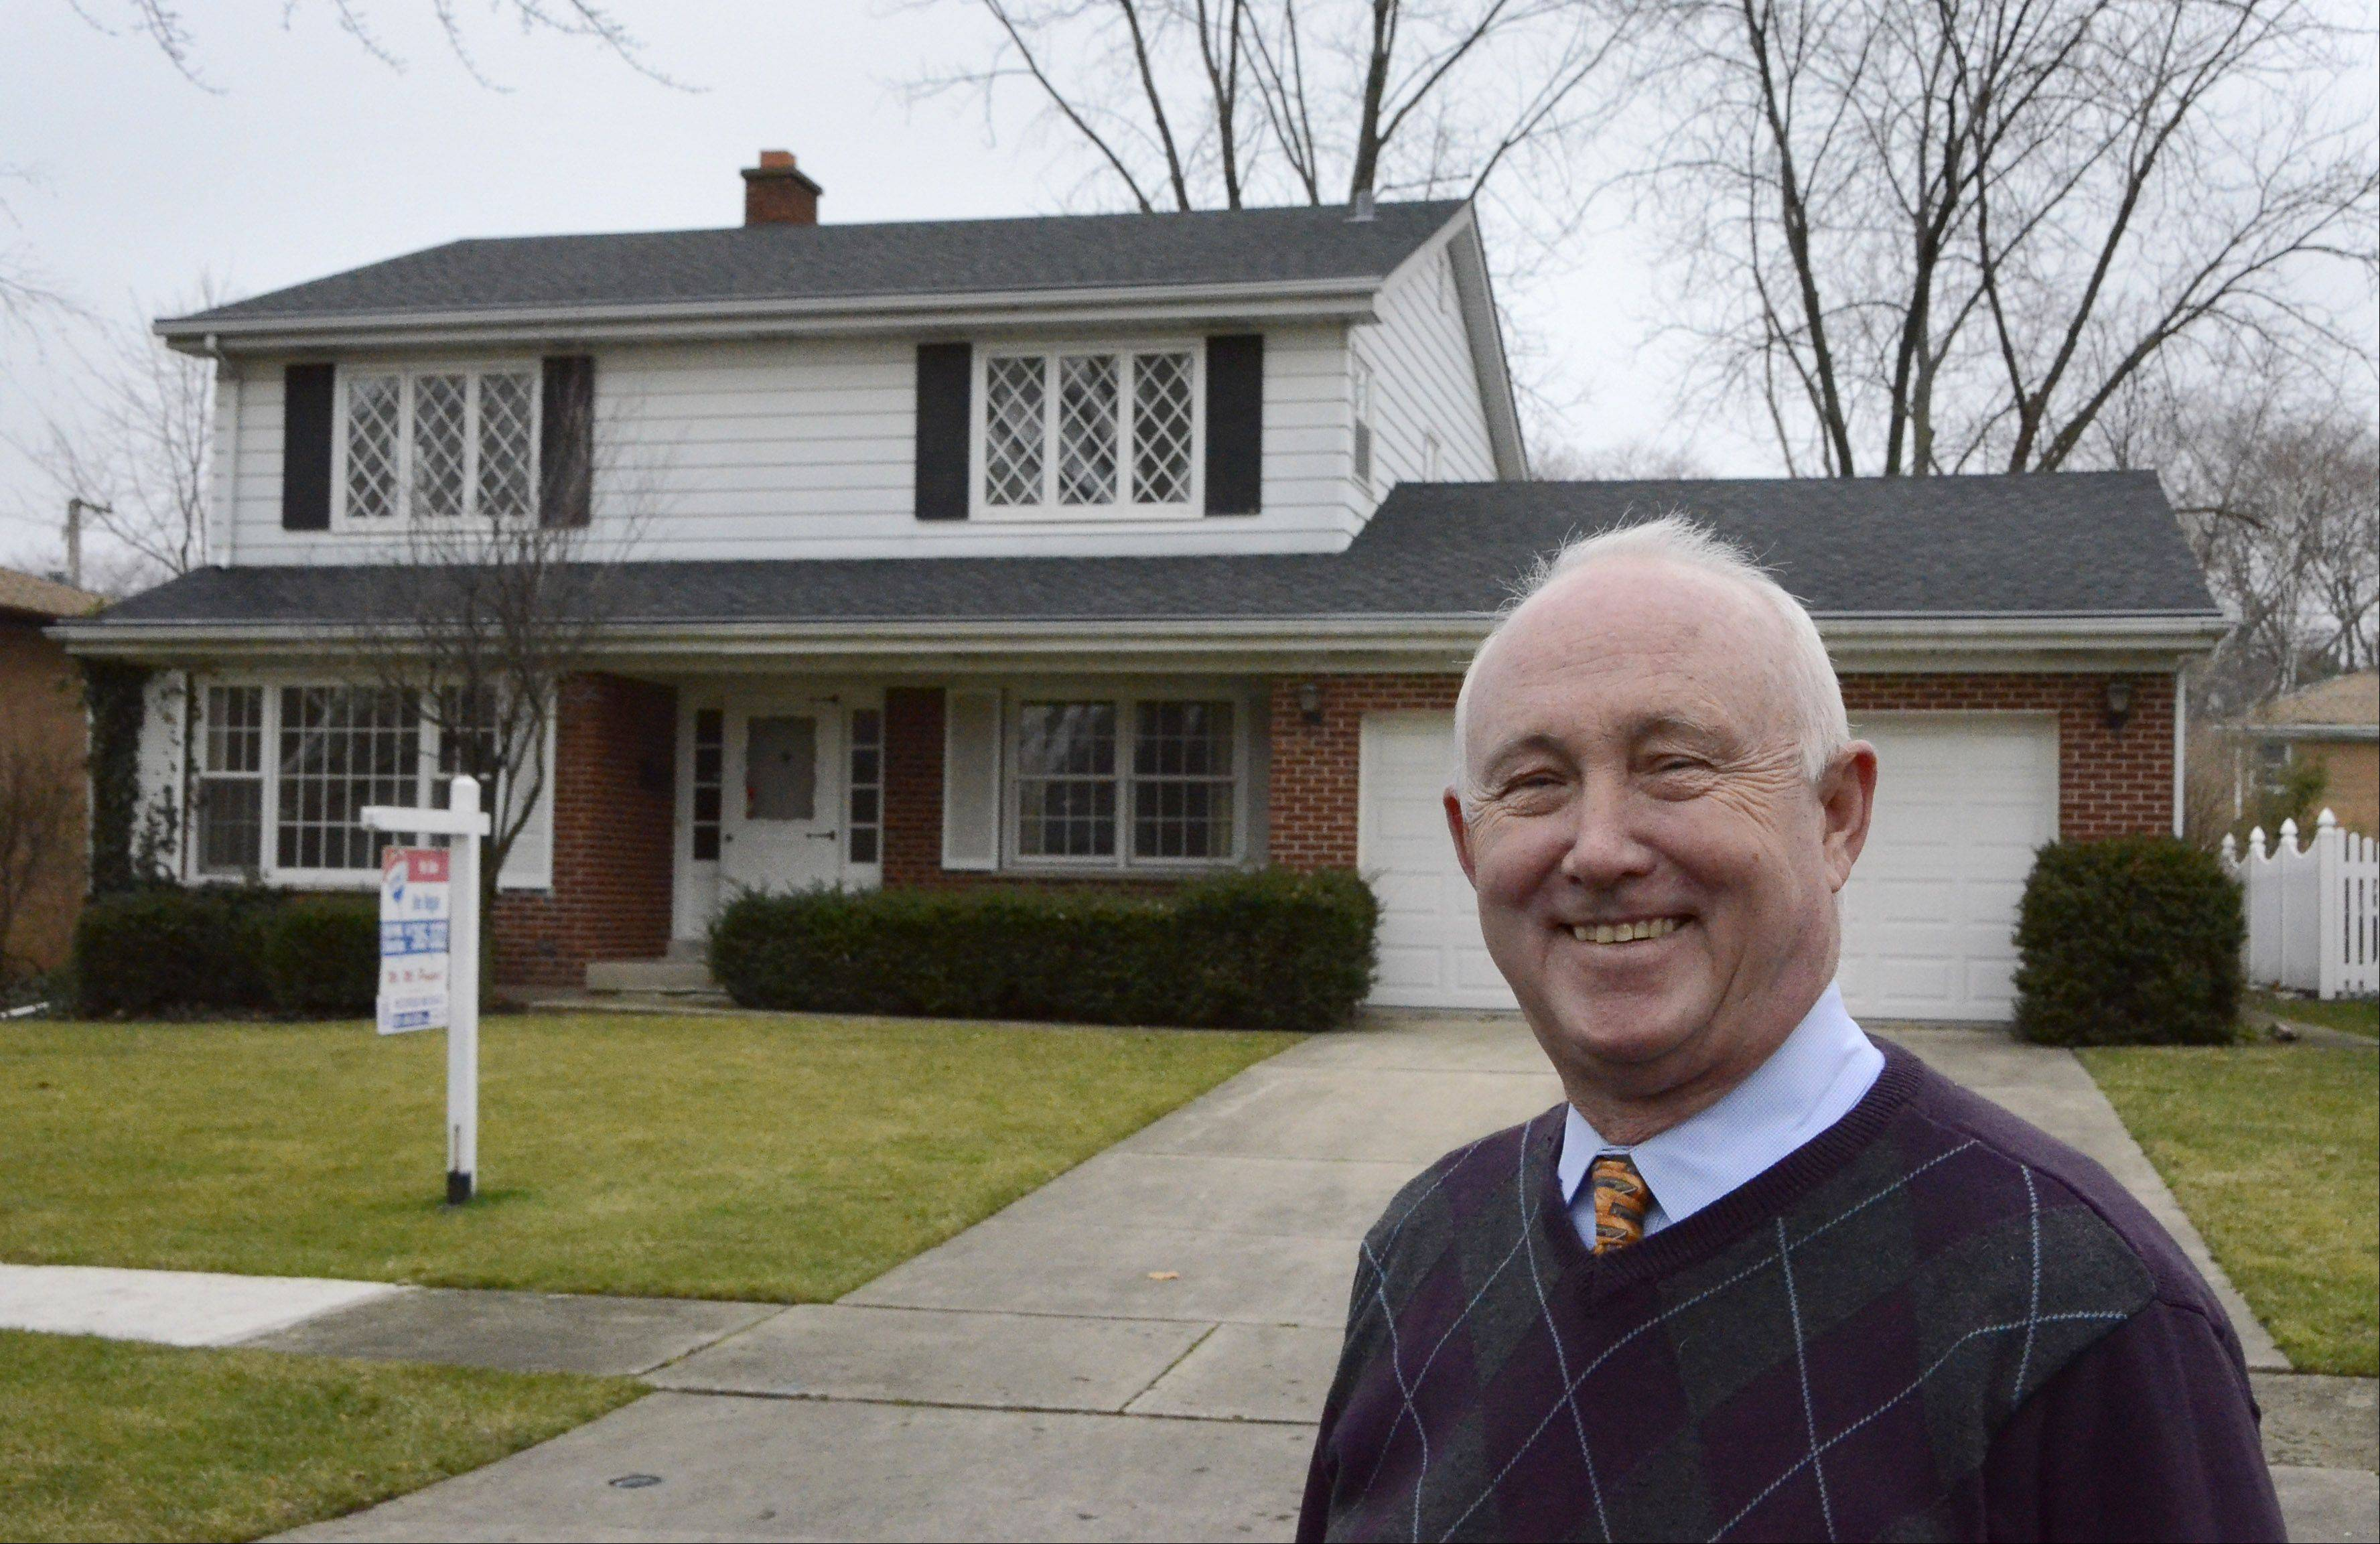 Realtor Jim Regan of RE/MAX Suburban believes the real estate market in the Northwest suburbs has bottomed and is on its way back up.